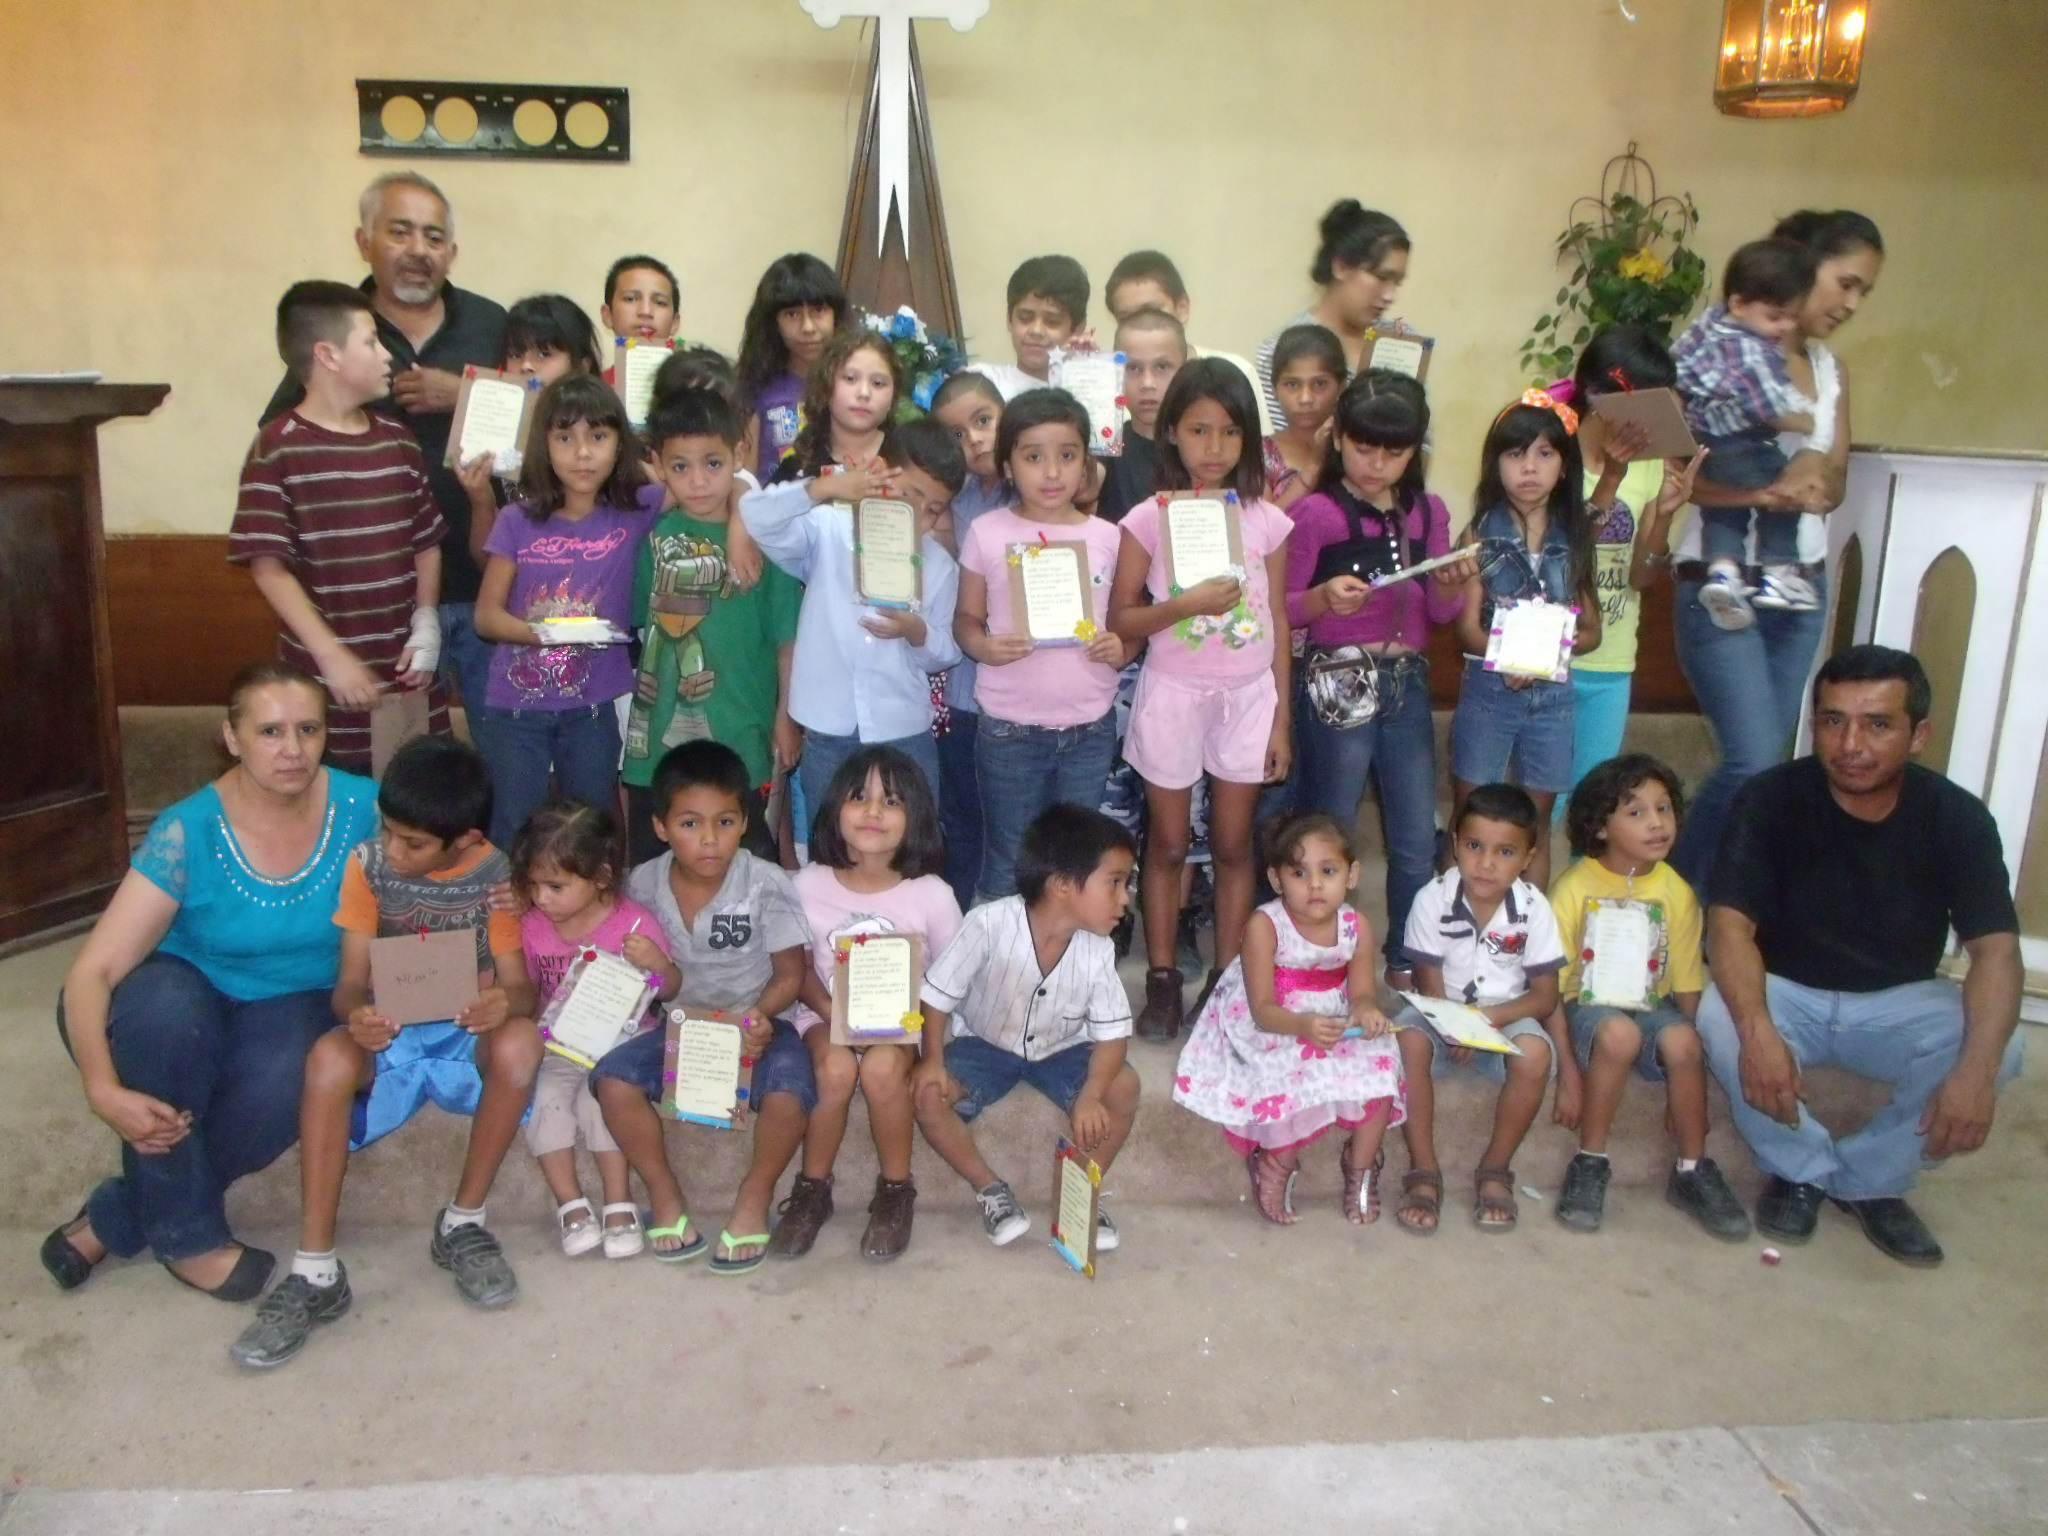 V.B.S. at Rey de Reyes church in Nogales Sonora, Mexico. Pastor Flores says that these children are in need of basic school supplies for this school year.